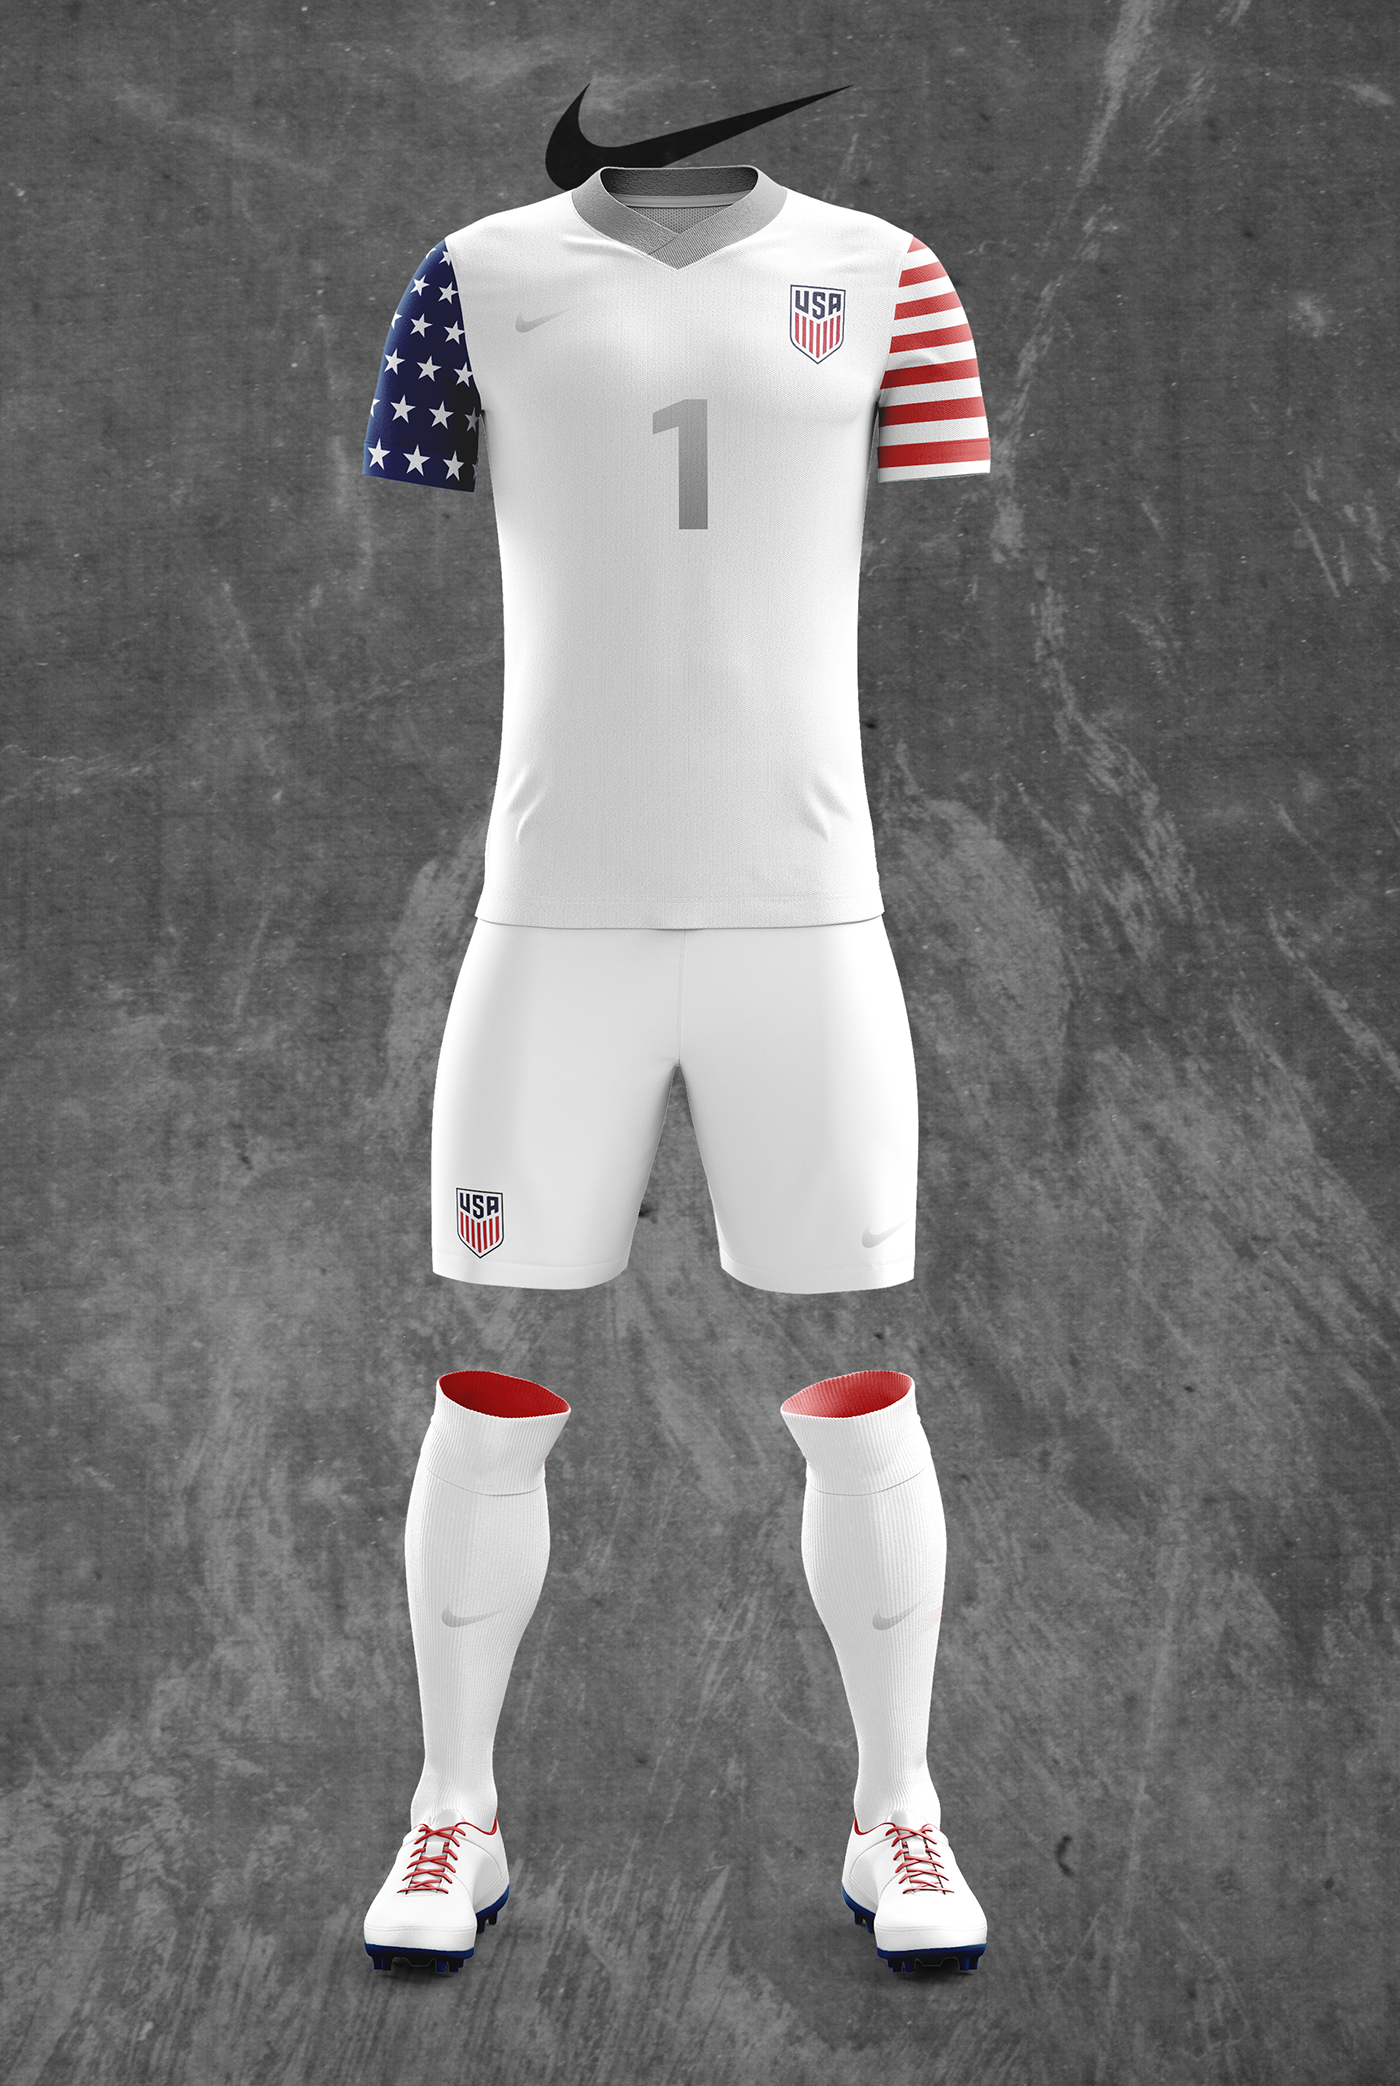 8ee29e6ca Concept US Men's National Team Nike Soccer Kit Designs on Behance ...